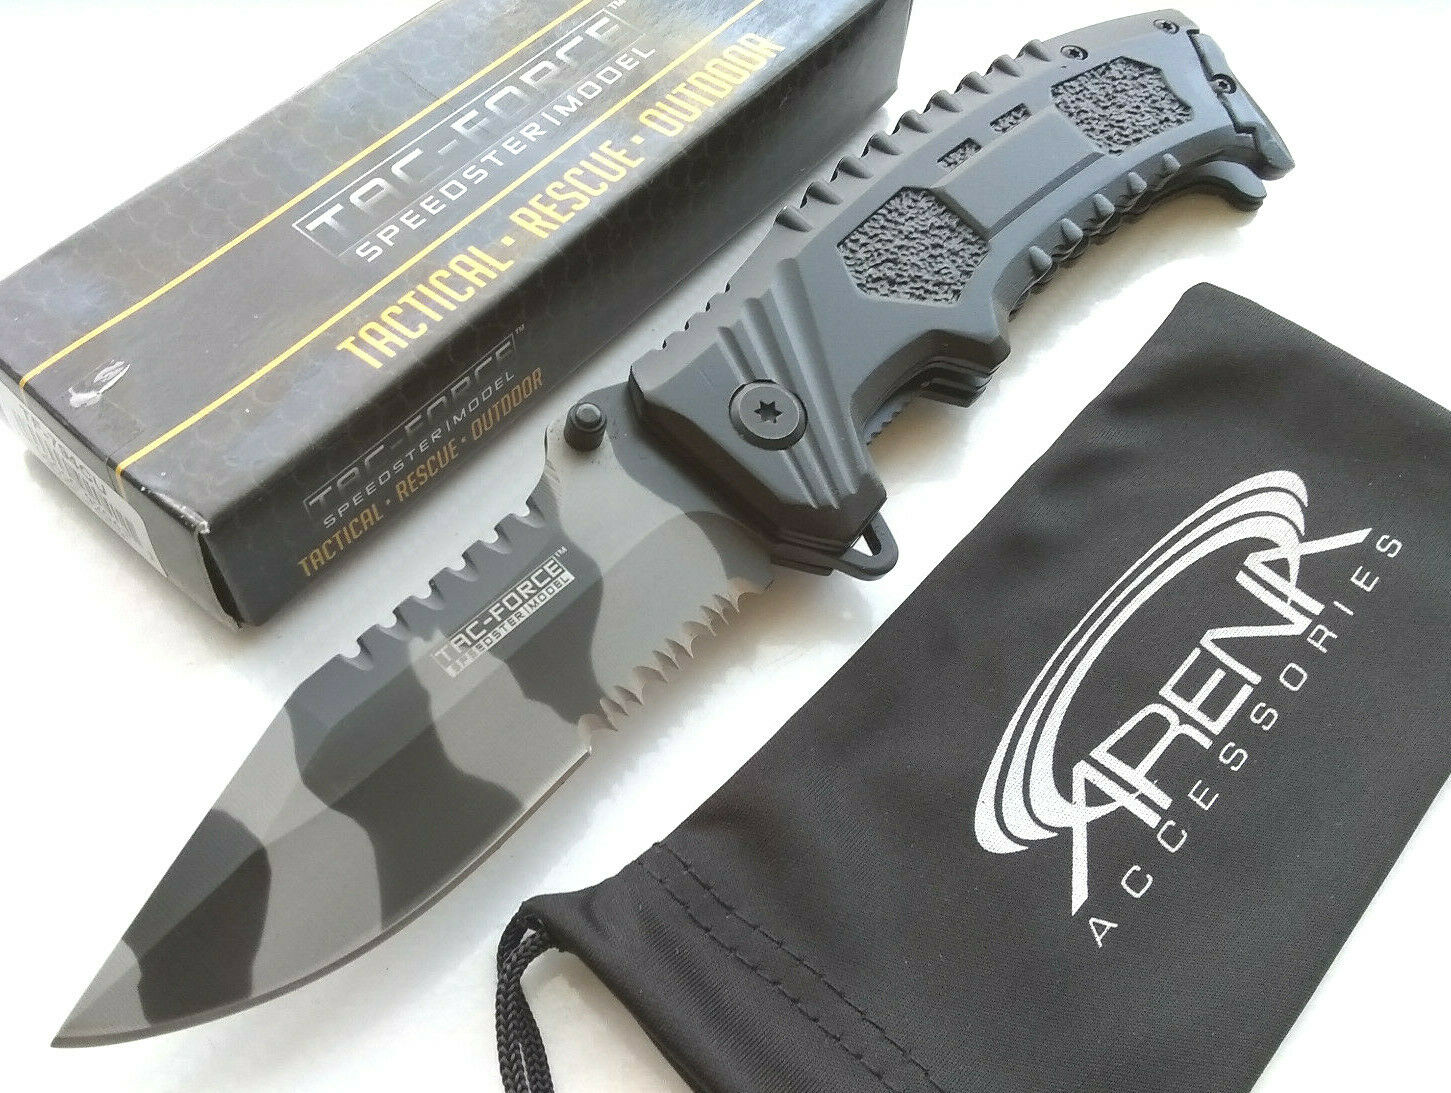 Urban Camo Tiger Stripe Serrated Blade Pocket Knife Spring Assisted EDC Flipper